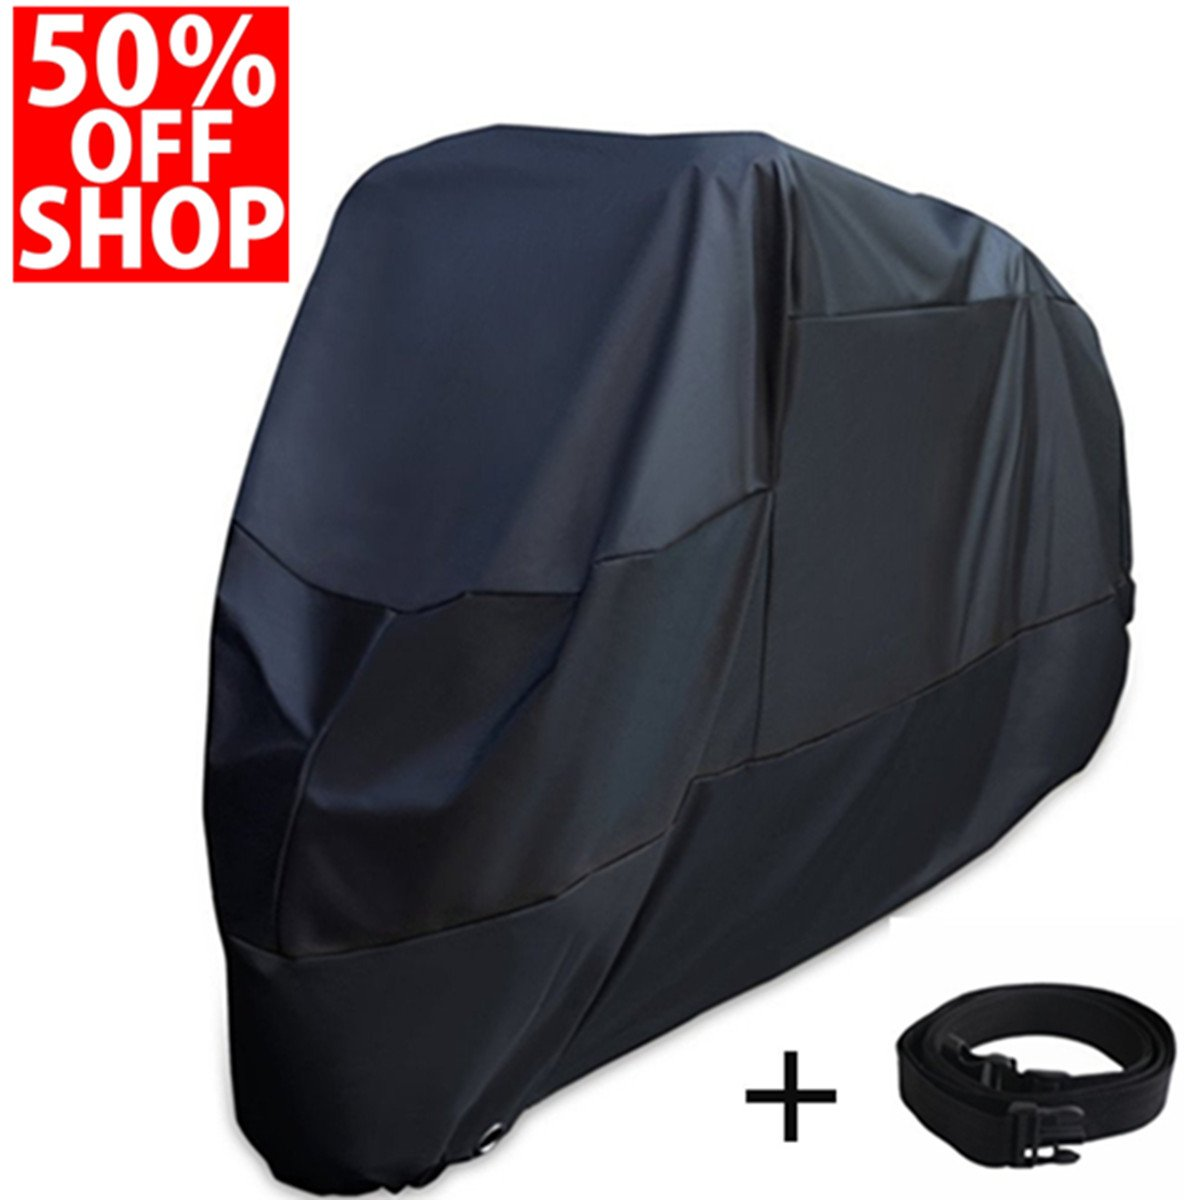 XYZCTEM Motorcycle Cover -Waterproof Outdoor Storage Bag,Fits up to 108 inch Motors,Compatible with Harley Davison and Most motors(Black& Lockholes& Professional Windproof Strap) by XYZCTEM